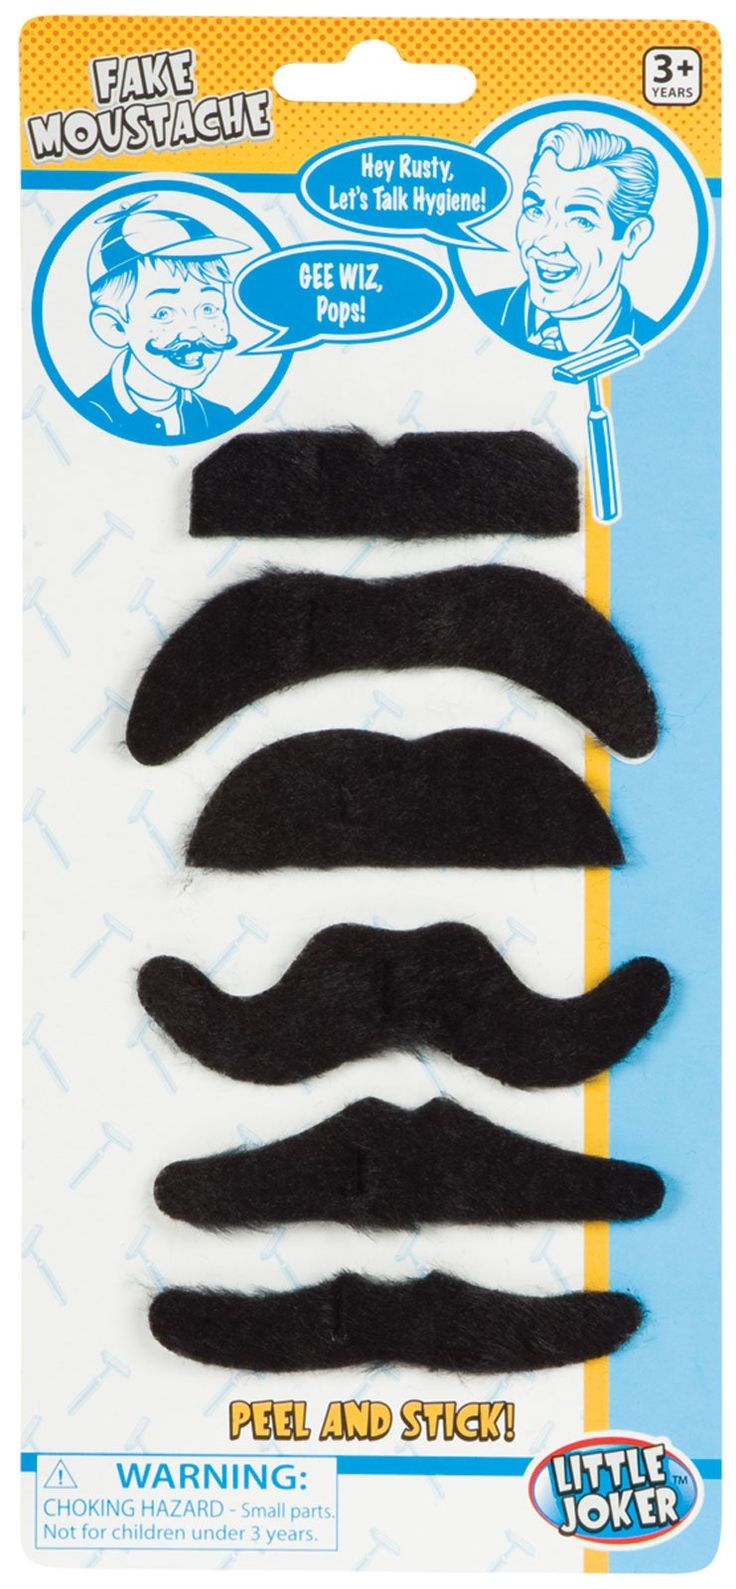 Fake Moustaches, 84135.  Package includes (6) fake moustaches in assorted styles. $4.00.